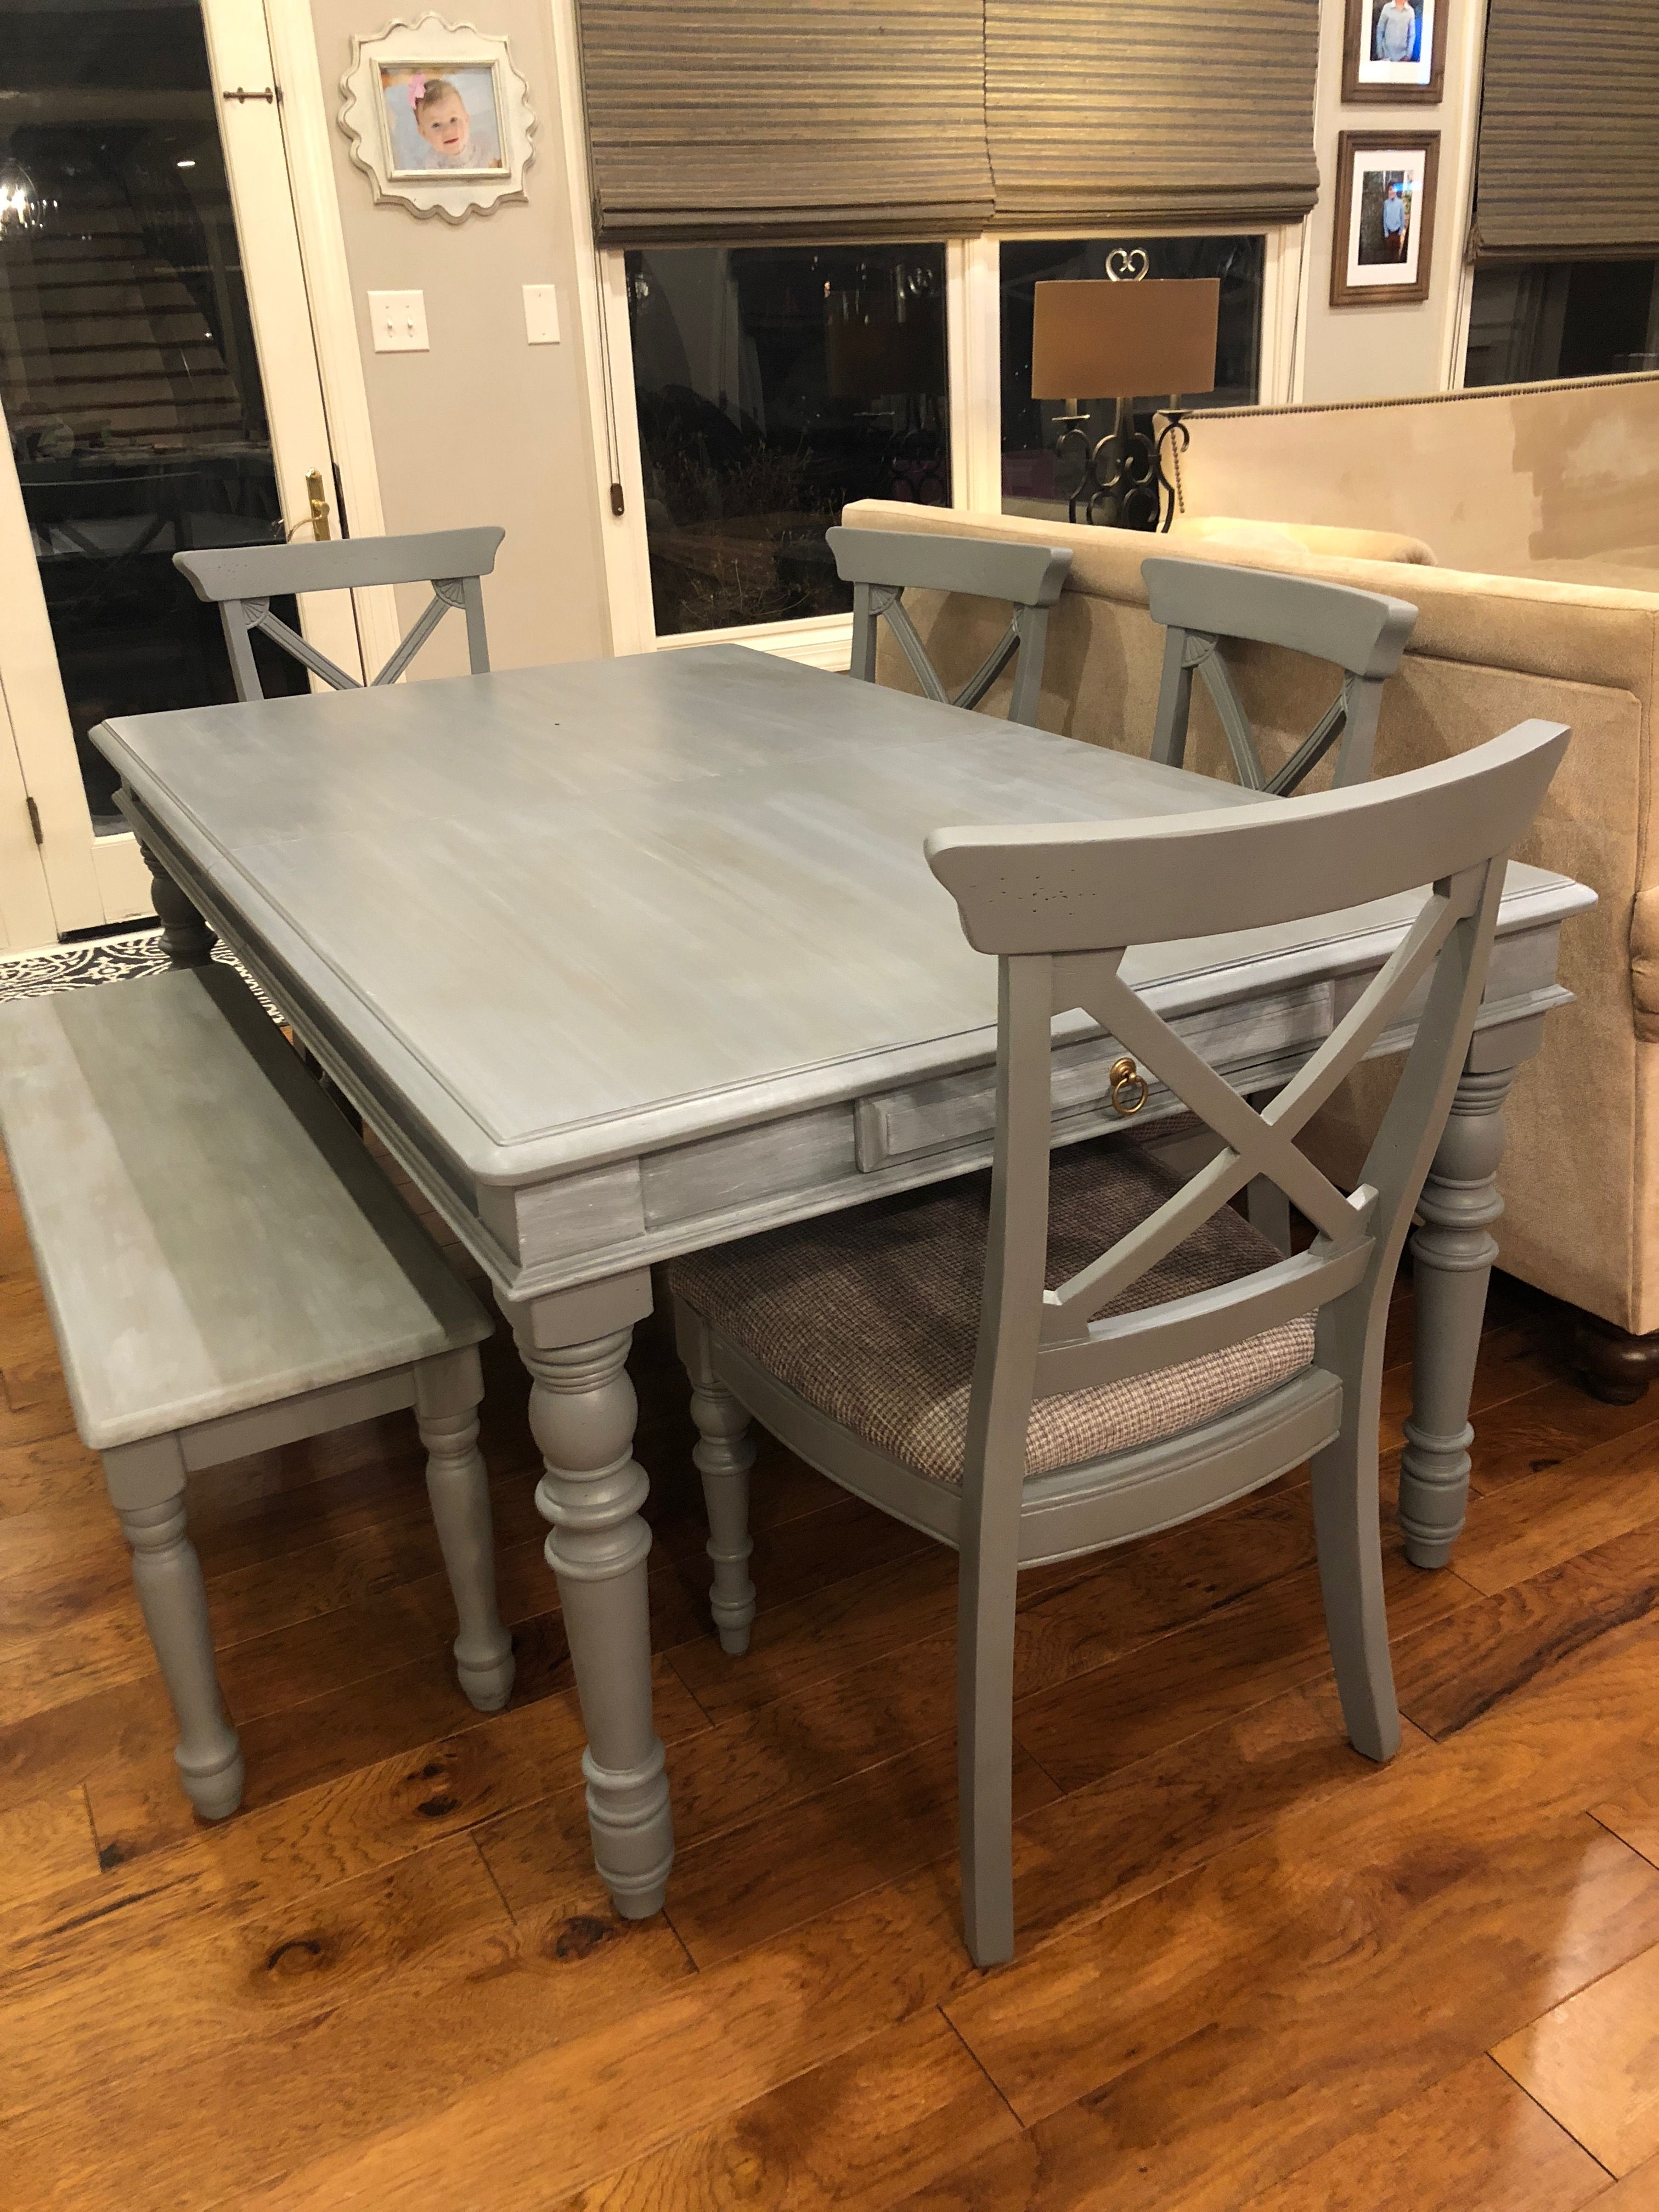 Chalk Painted Kitchen Table And Chairs Chalk Paint Kitchen Table Chalk Paint Dining Room Table Chalk Paint Dining Table